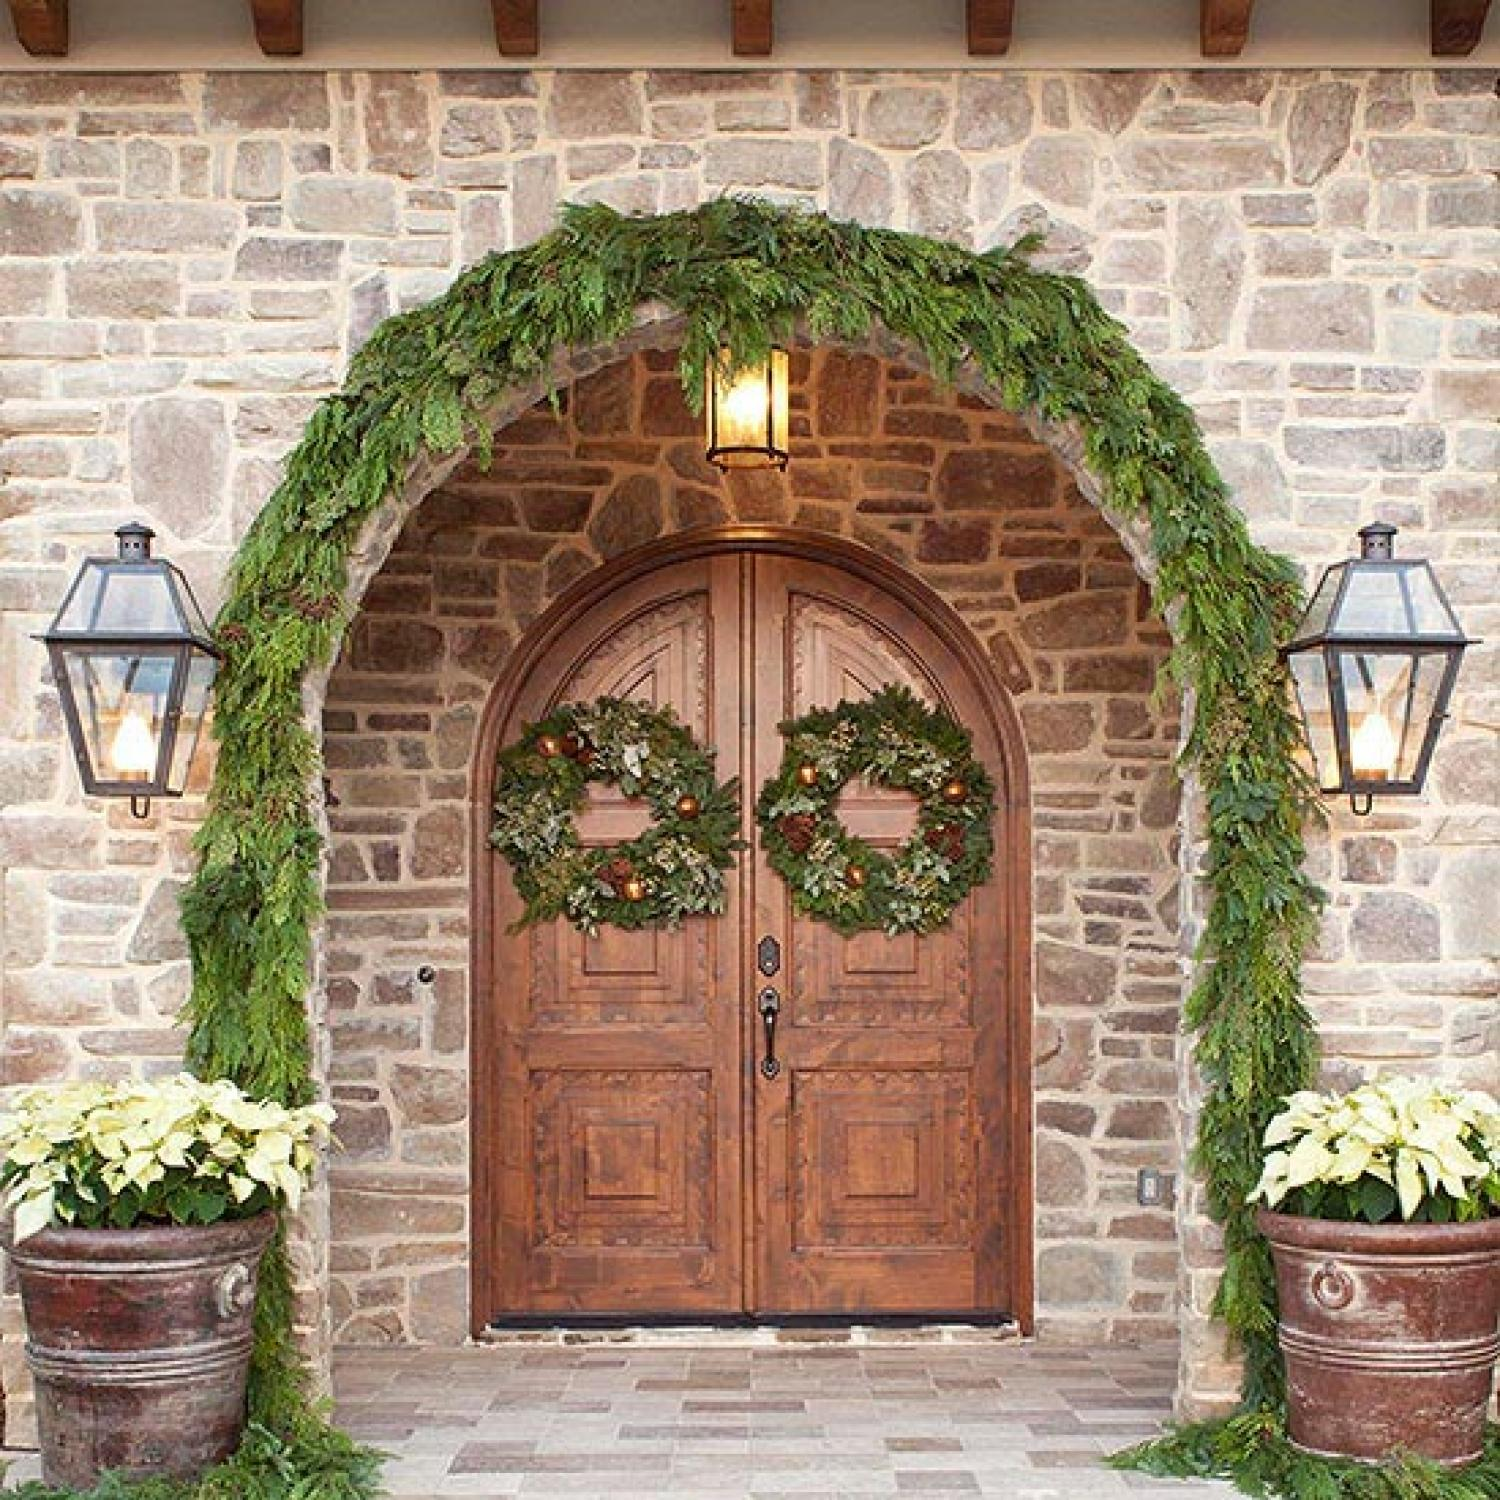 Decorated Homes: Scandinavian-Style Christmas: Pretty Texas Home